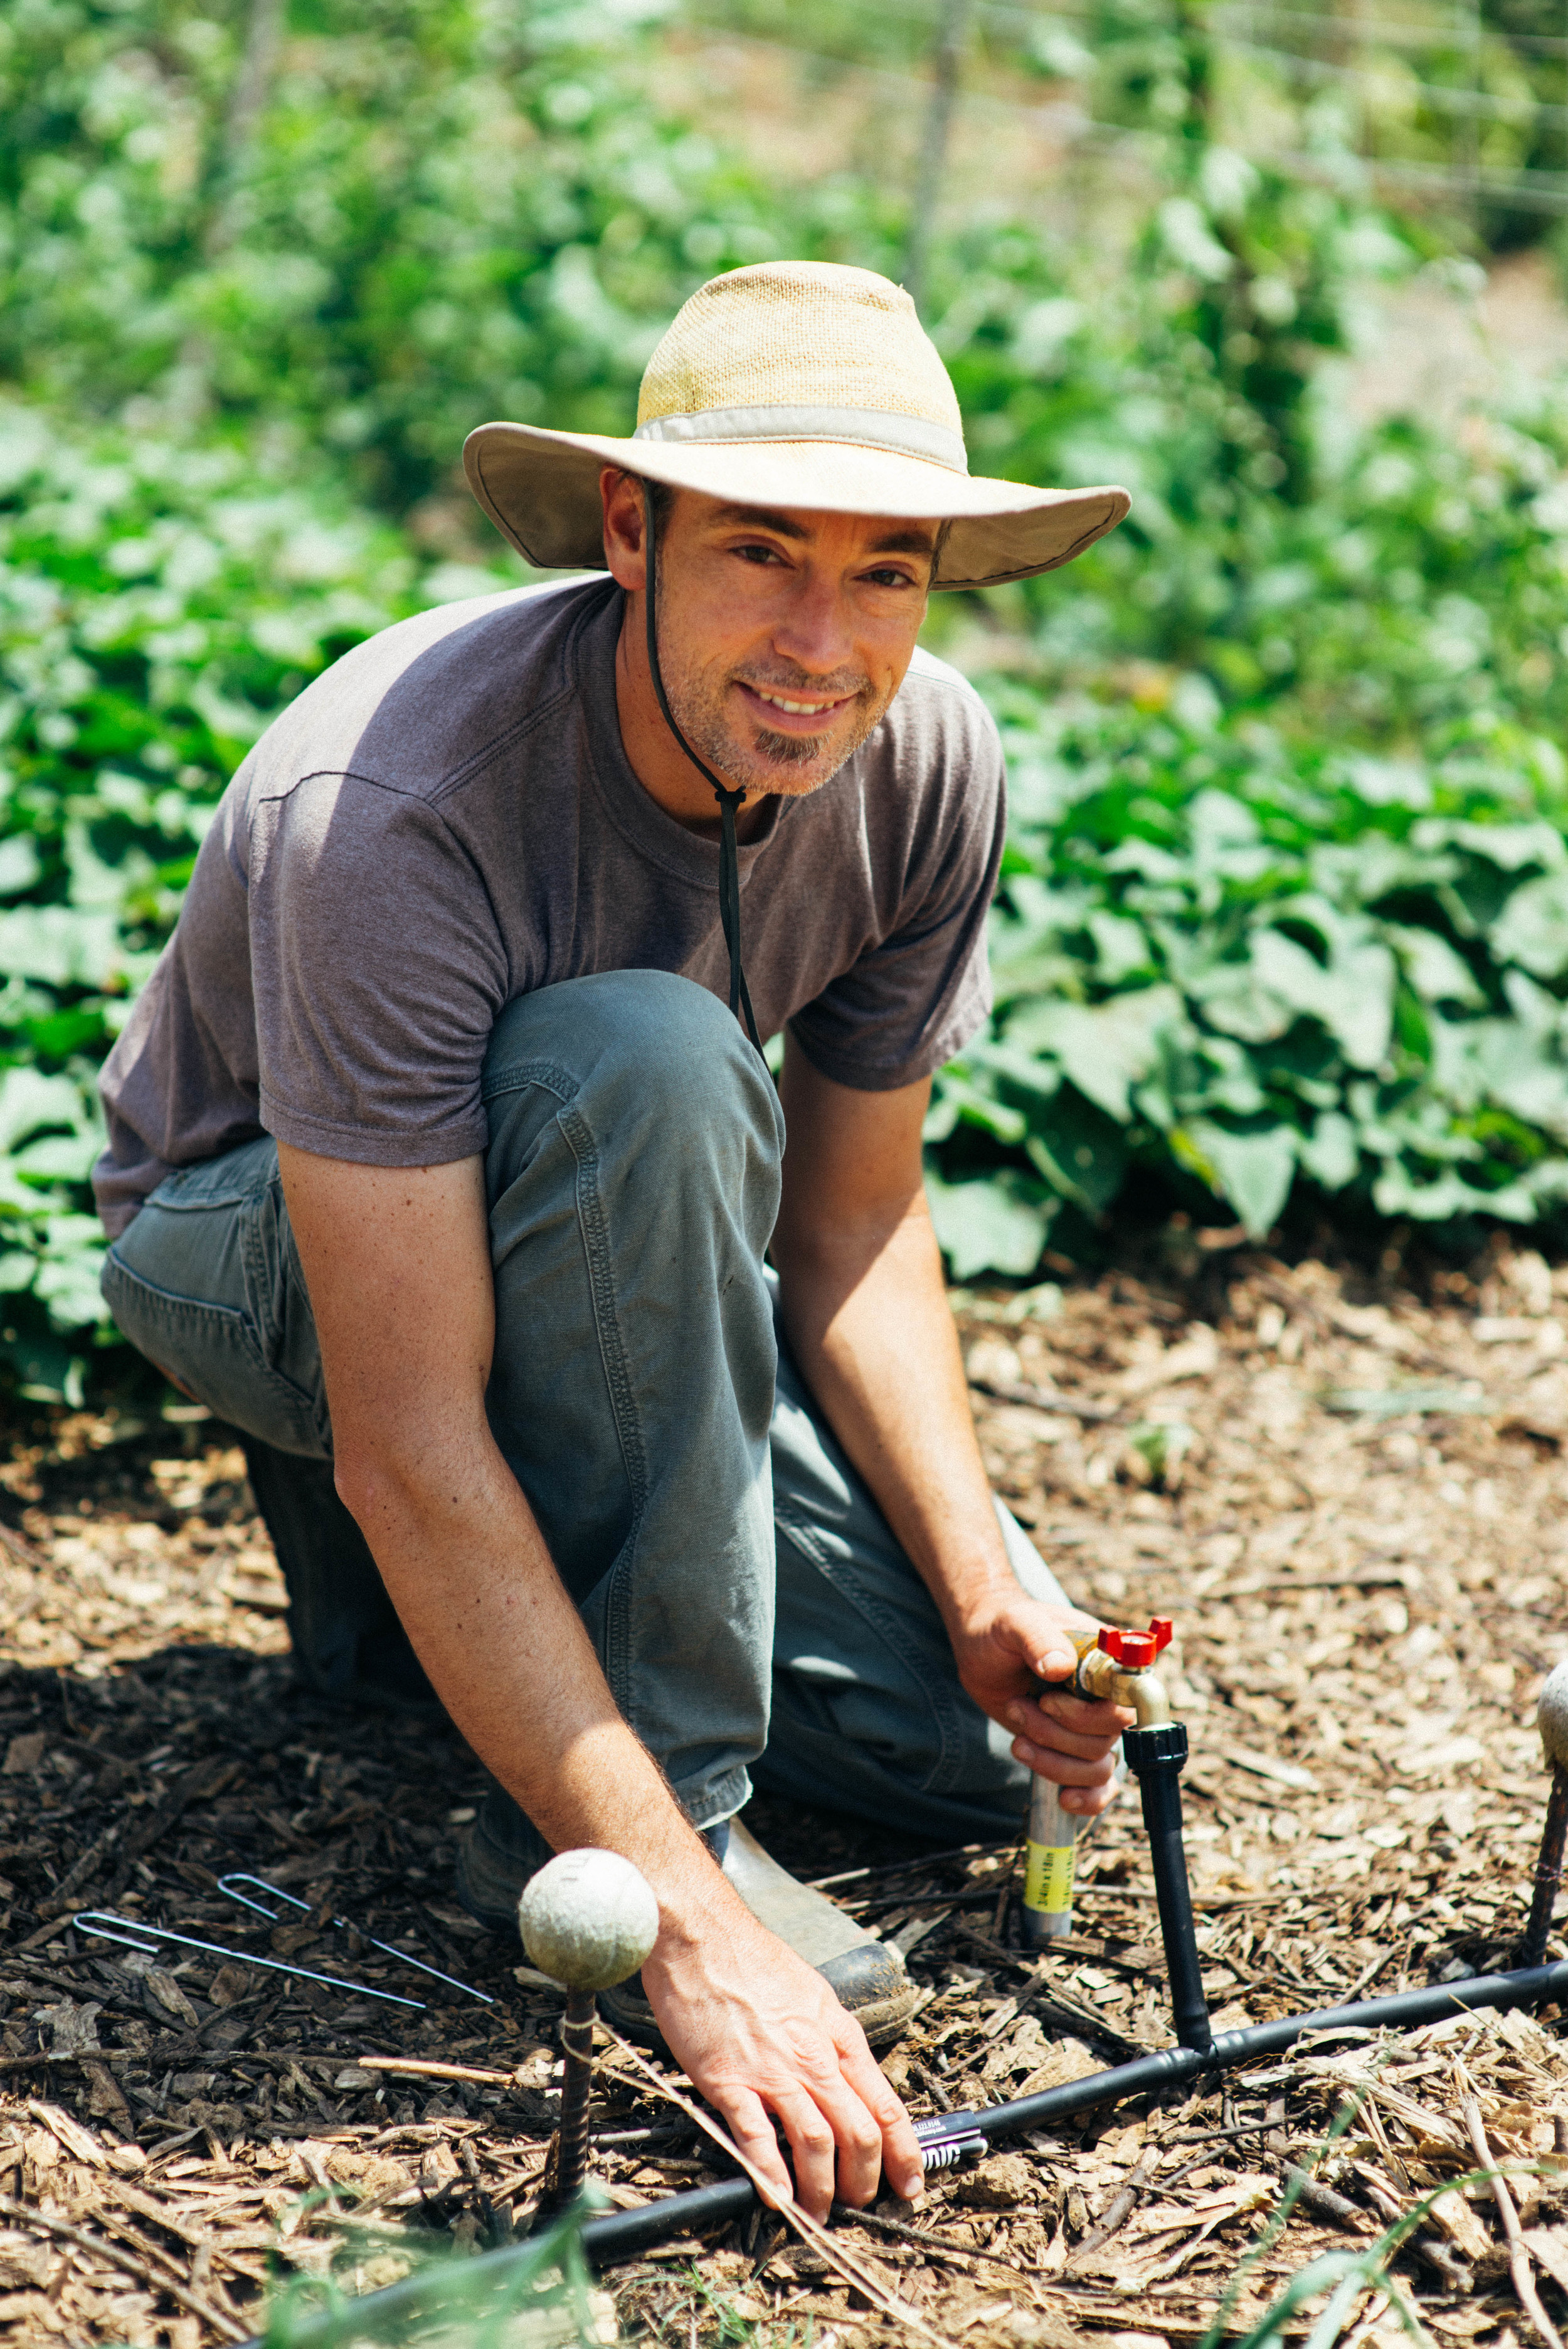 Seth Davis, Director of our Hopewell Gardens, works alongside Josh Kurtz, our resident water specialist, both in TN and in Uganda to create water harvesting systems that improve food production.